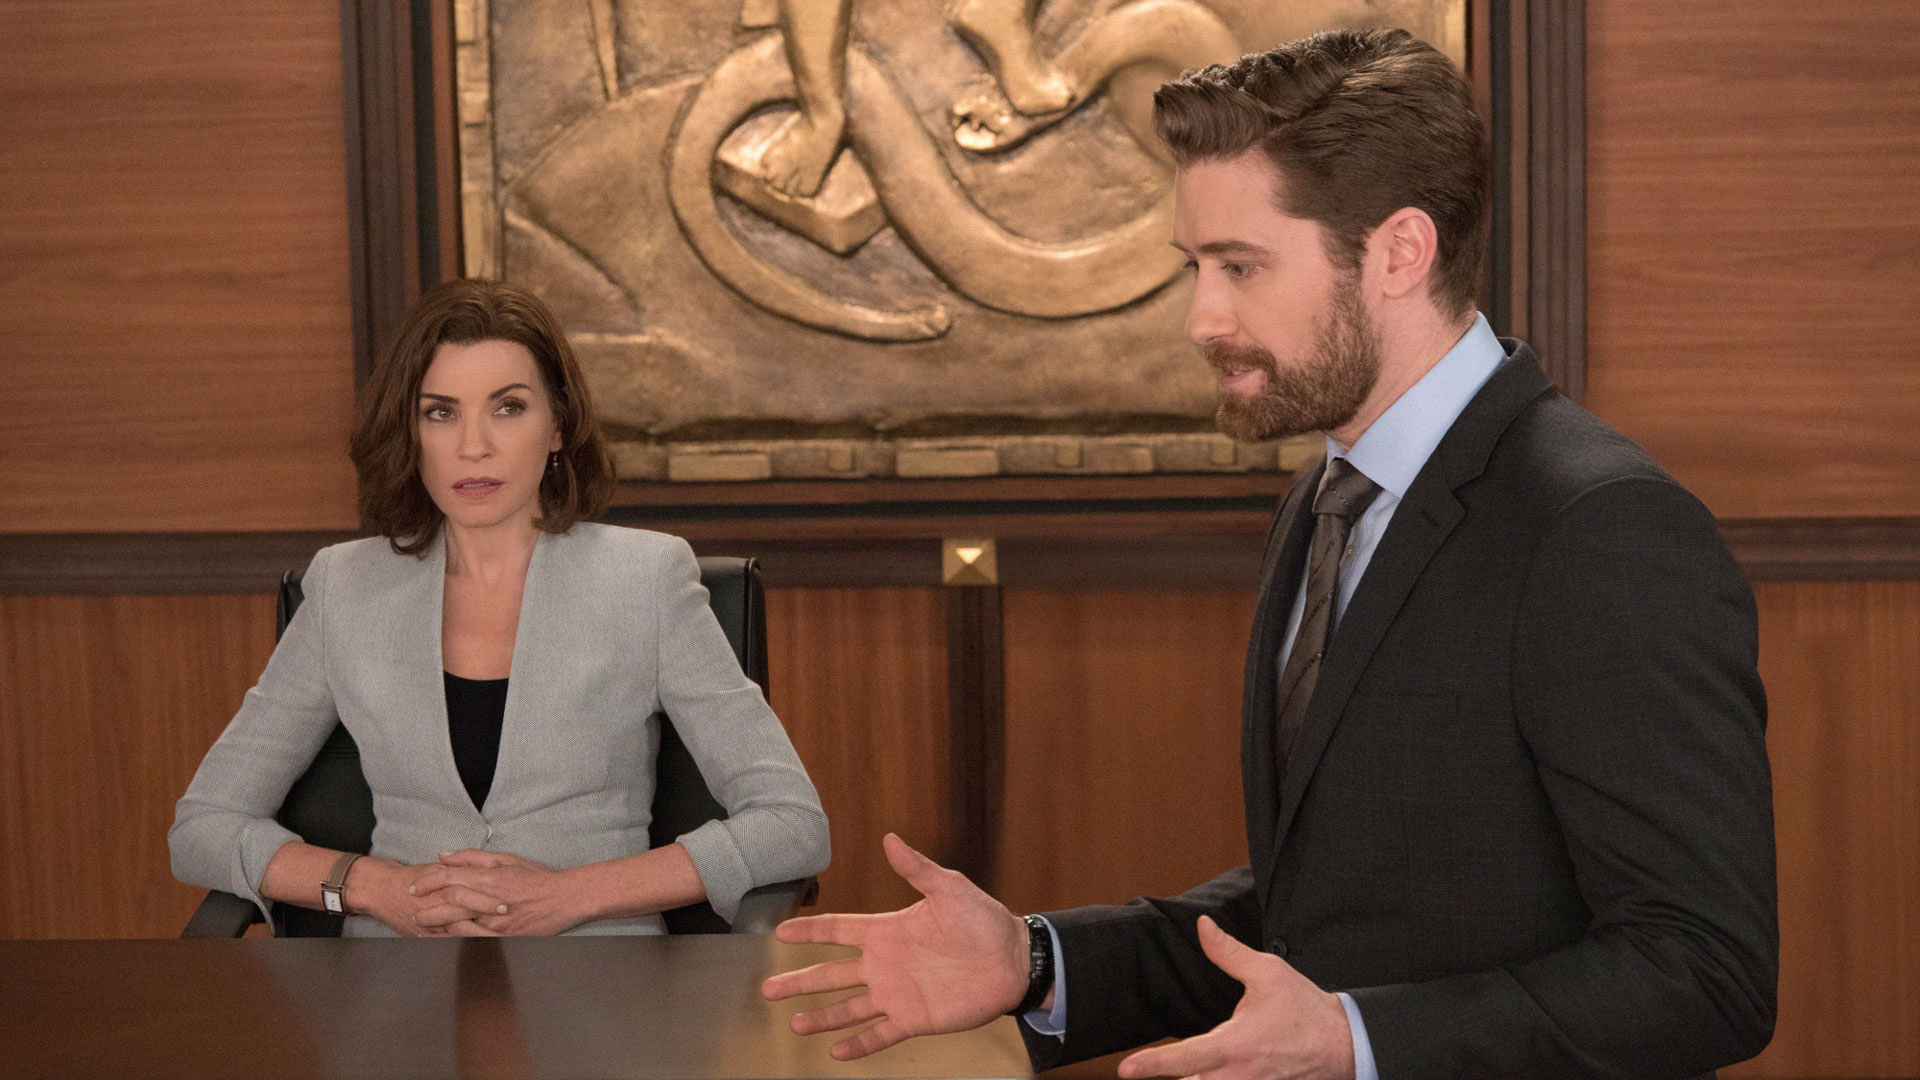 Julianna Margulies as Alicia Florrick and Matthew Morrison as Connor Fox